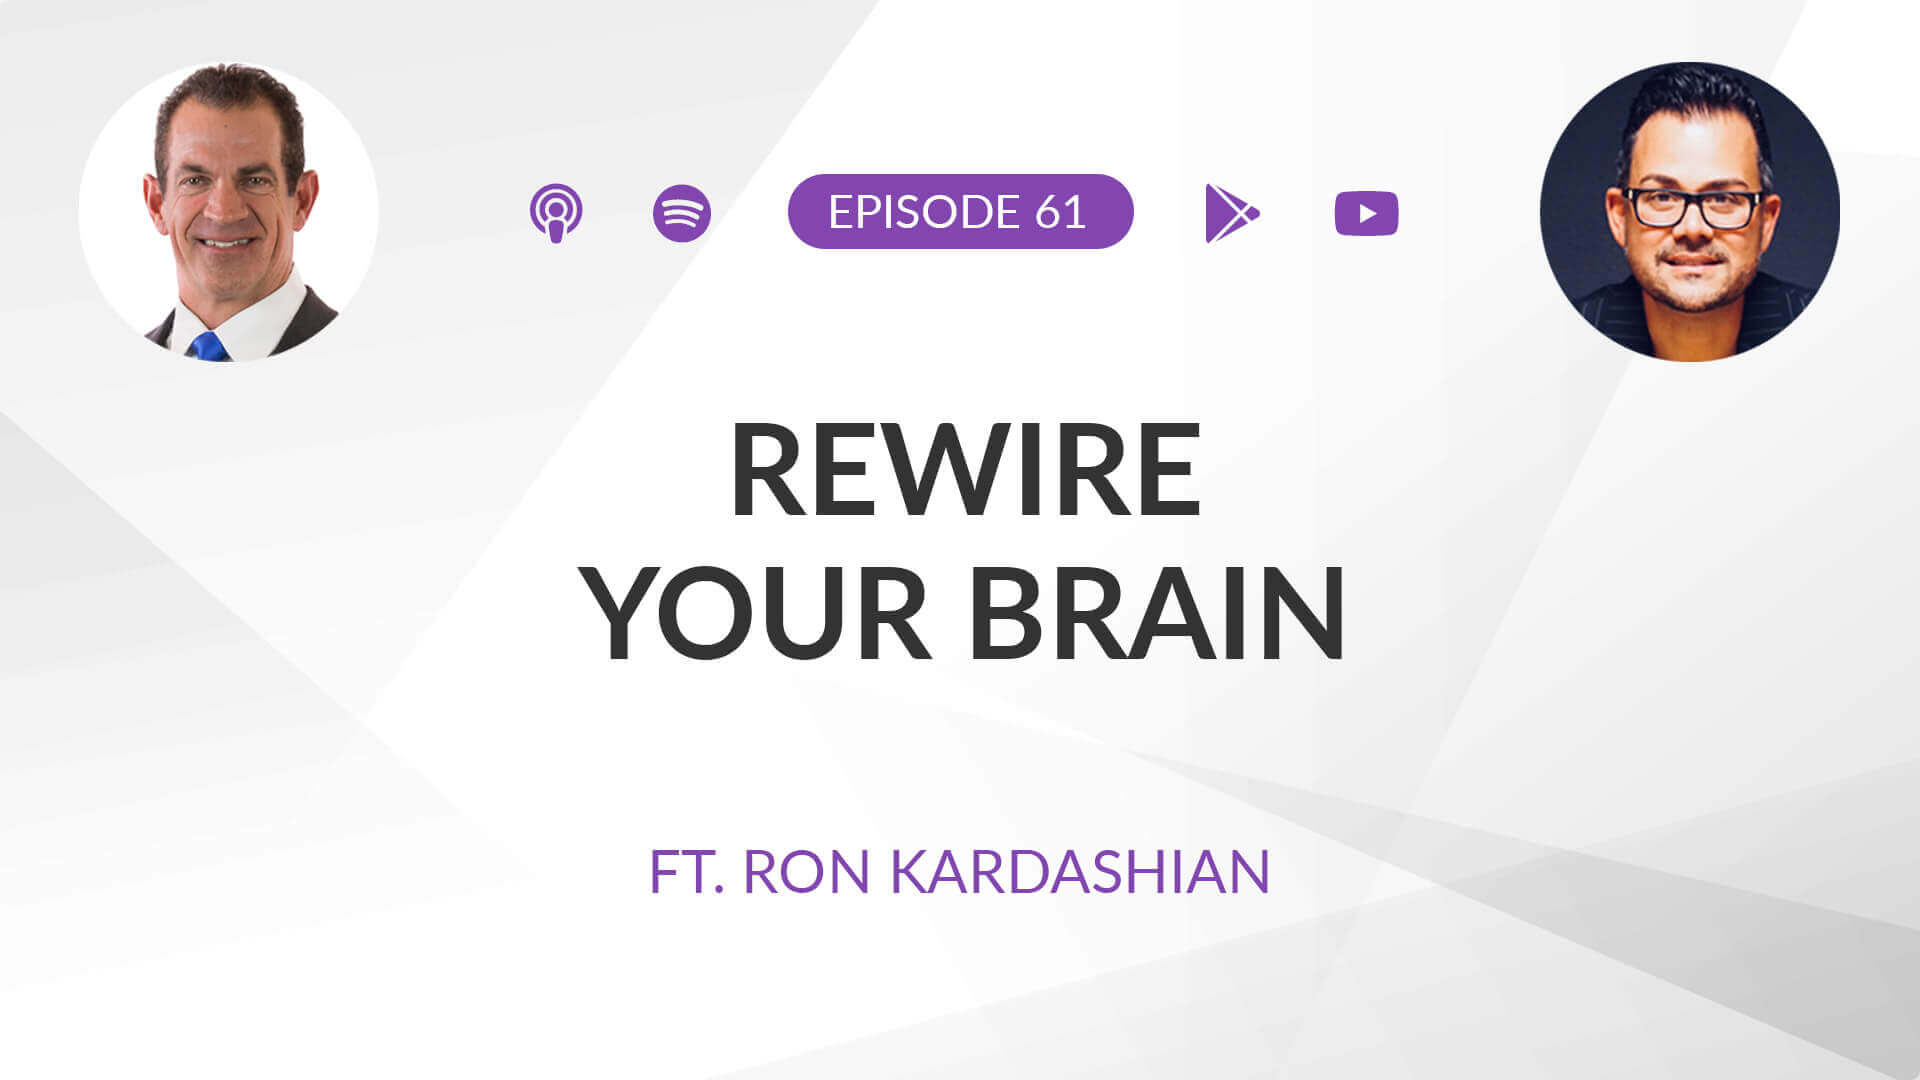 Ep 61: Rewire Your Brain ft. Ron Kardashian